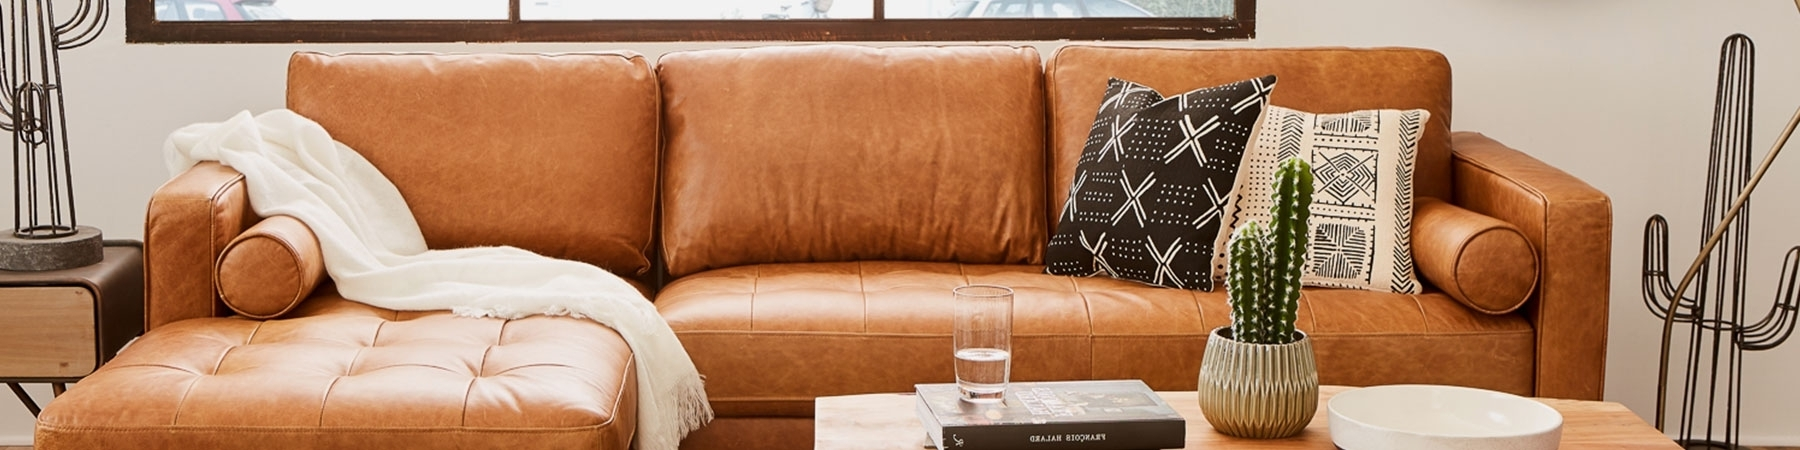 Widely Used Modern Sectional Sofas – Modular Leather Couches (View 15 of 20)